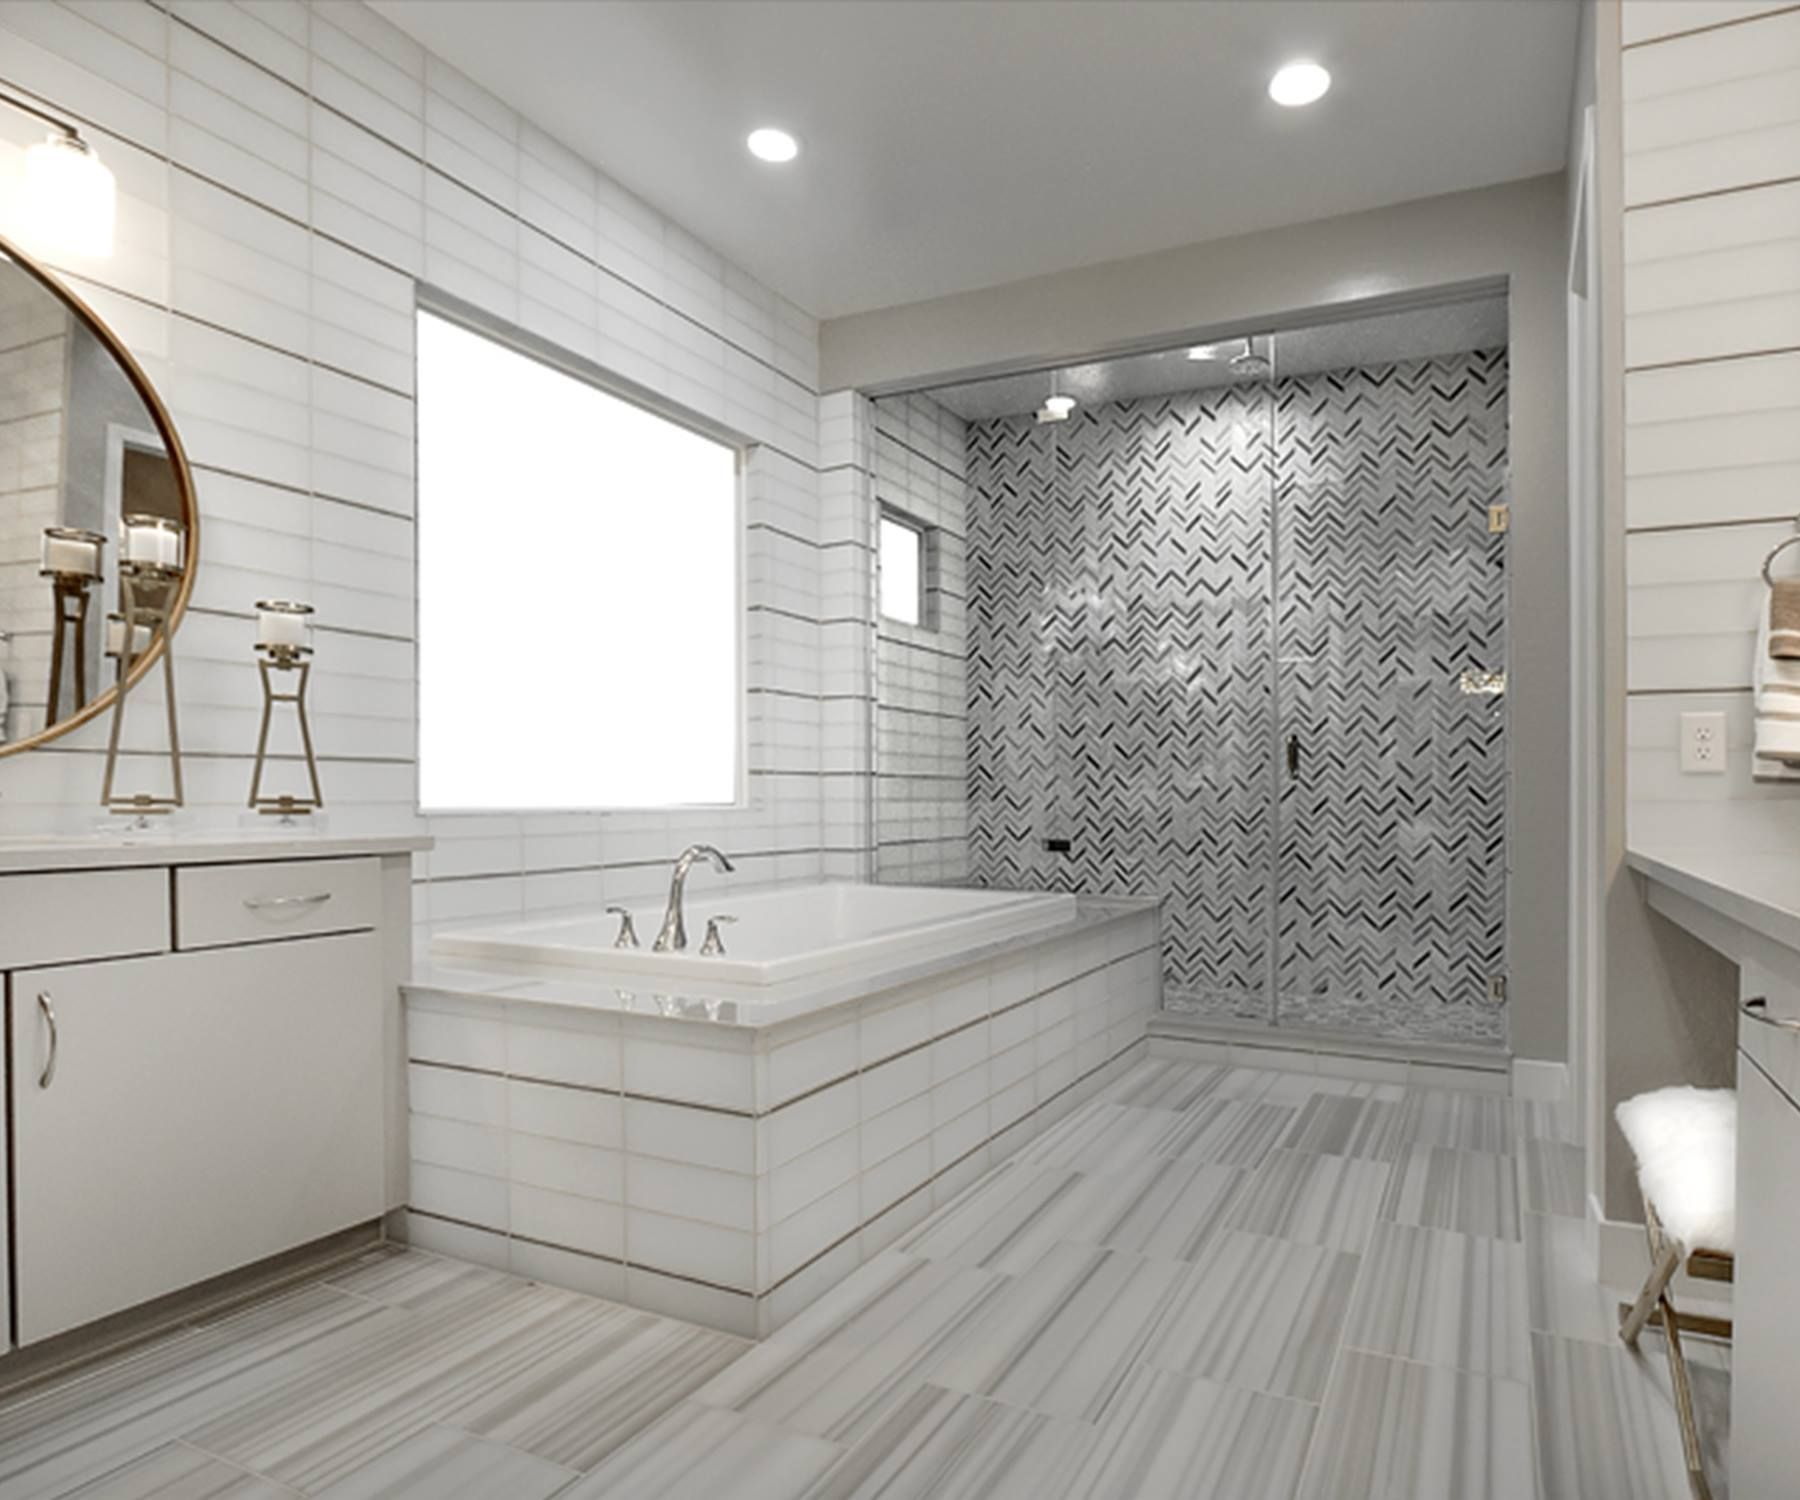 Do You Like The STYLE Of This Shower TILE?!